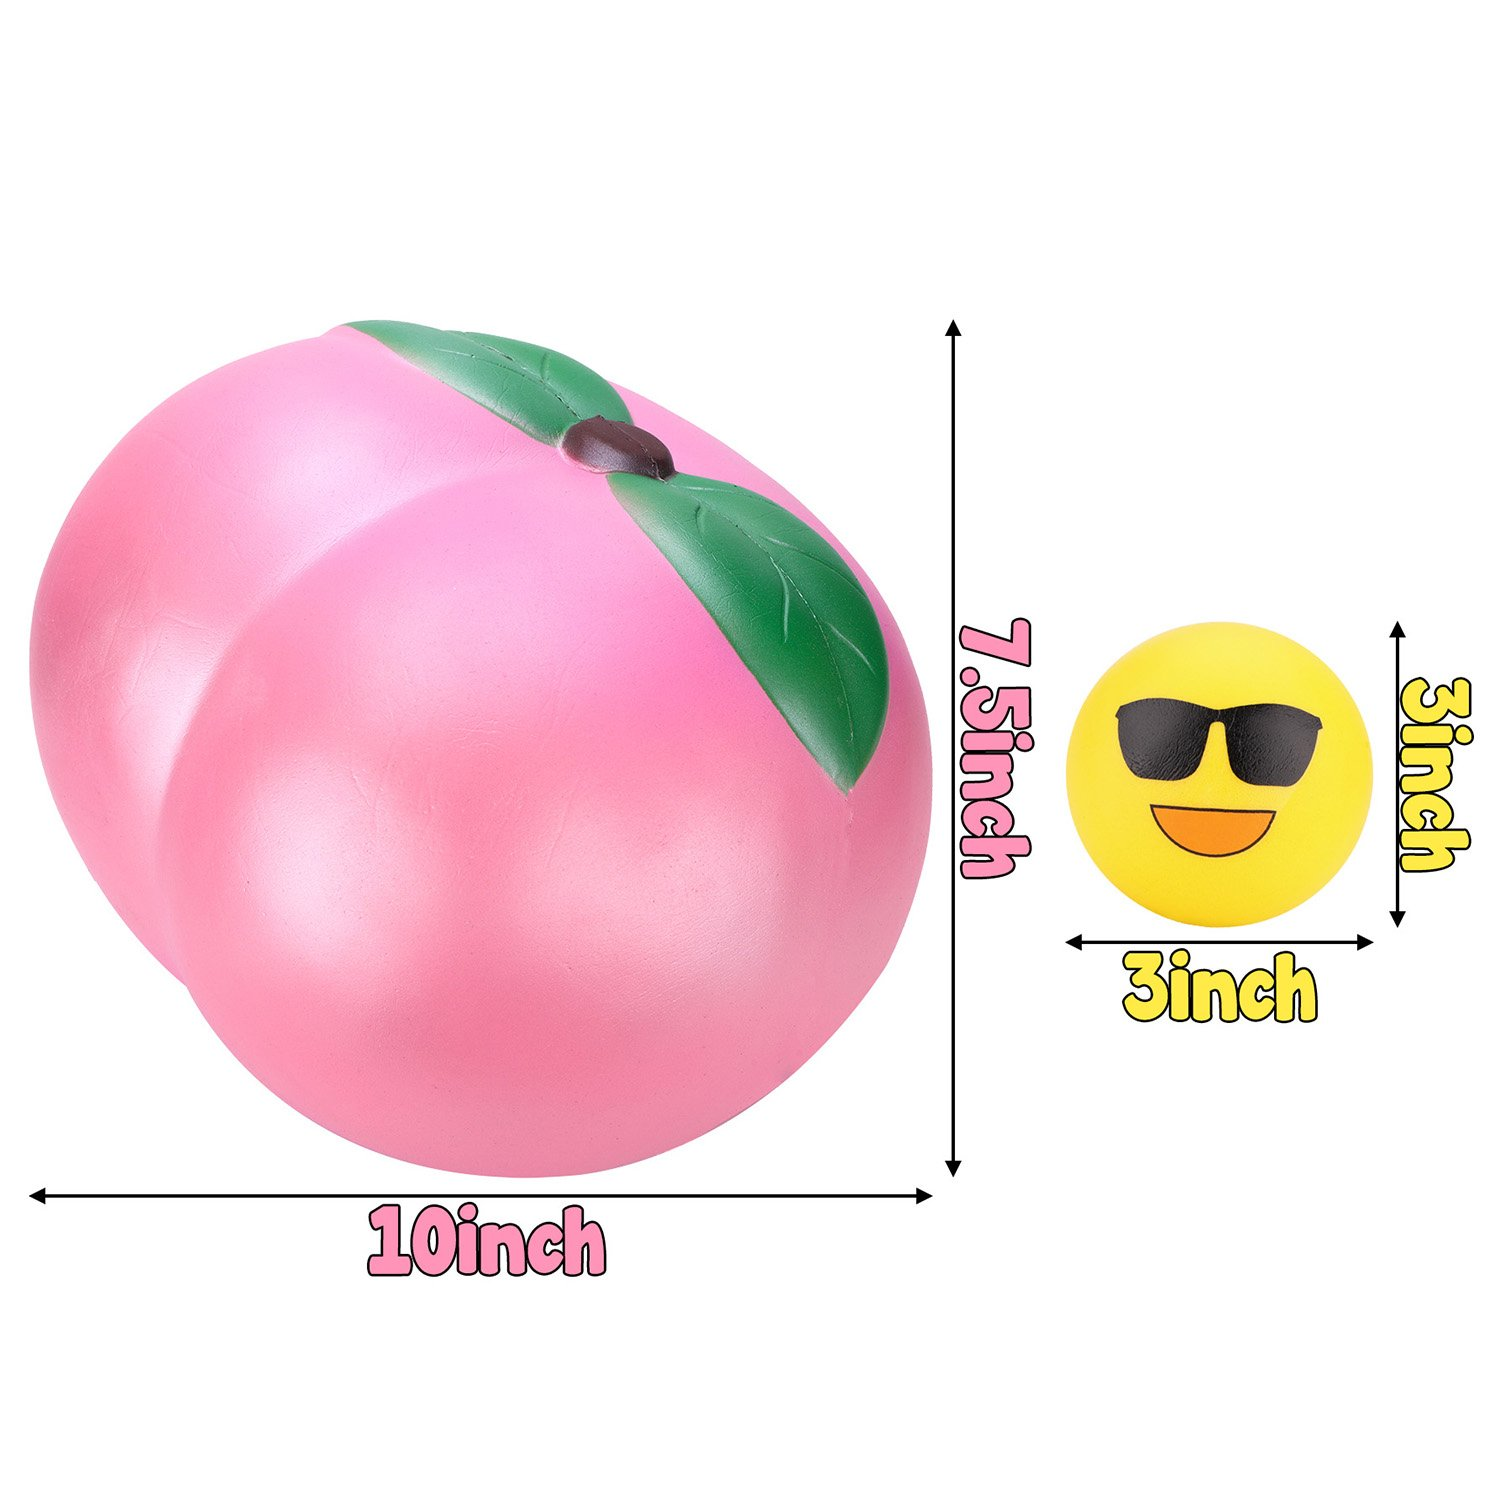 WATINC 10inch Jumbo Squishies, Large Peach Squishies, Birthday Gift for Kids, Giant Slow Rising Simulation Cute Fruit Squeeze Toy for Collection, Decorative Props, Stress Relief, Bonus Emoji squishies by WATINC (Image #2)